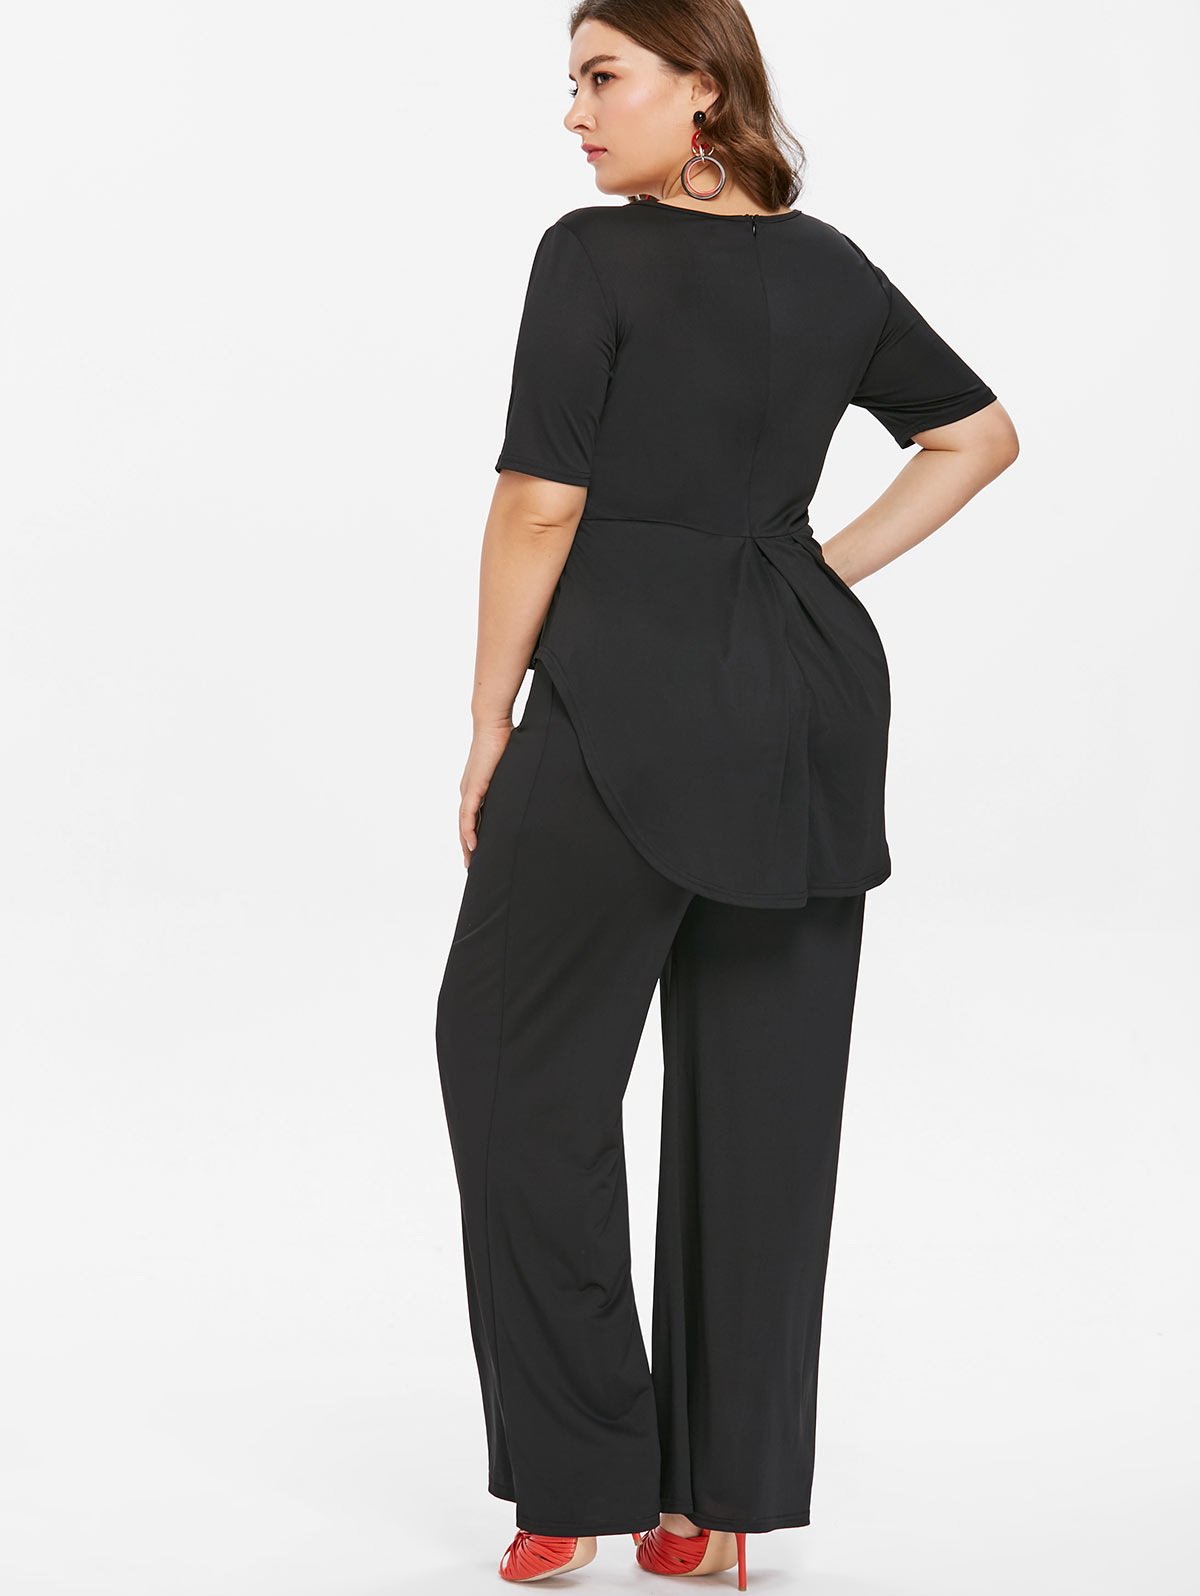 6e6b29c7769 Wipalo Plus Size 5XL V Neck Wide Leg Pants Elegant Jumpsuit Women Black  Short Sleeve Overlay Straight Peplum Jumpsuit Overalls-in Jumpsuits from  Women s ...